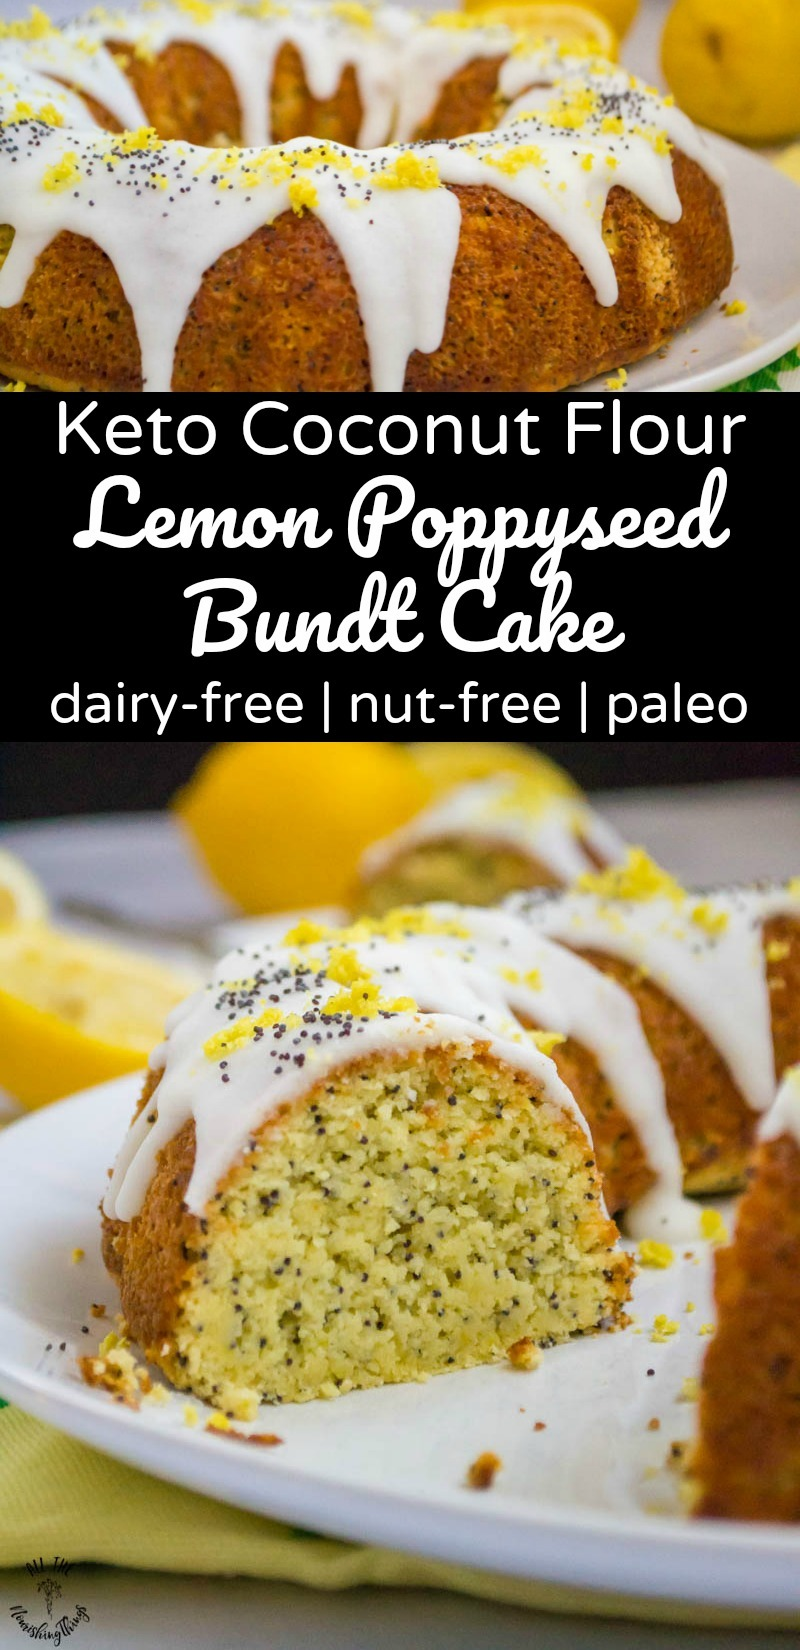 collage of 2 images of keto coconut flour lemon poppyseed bundt cake with text overlay